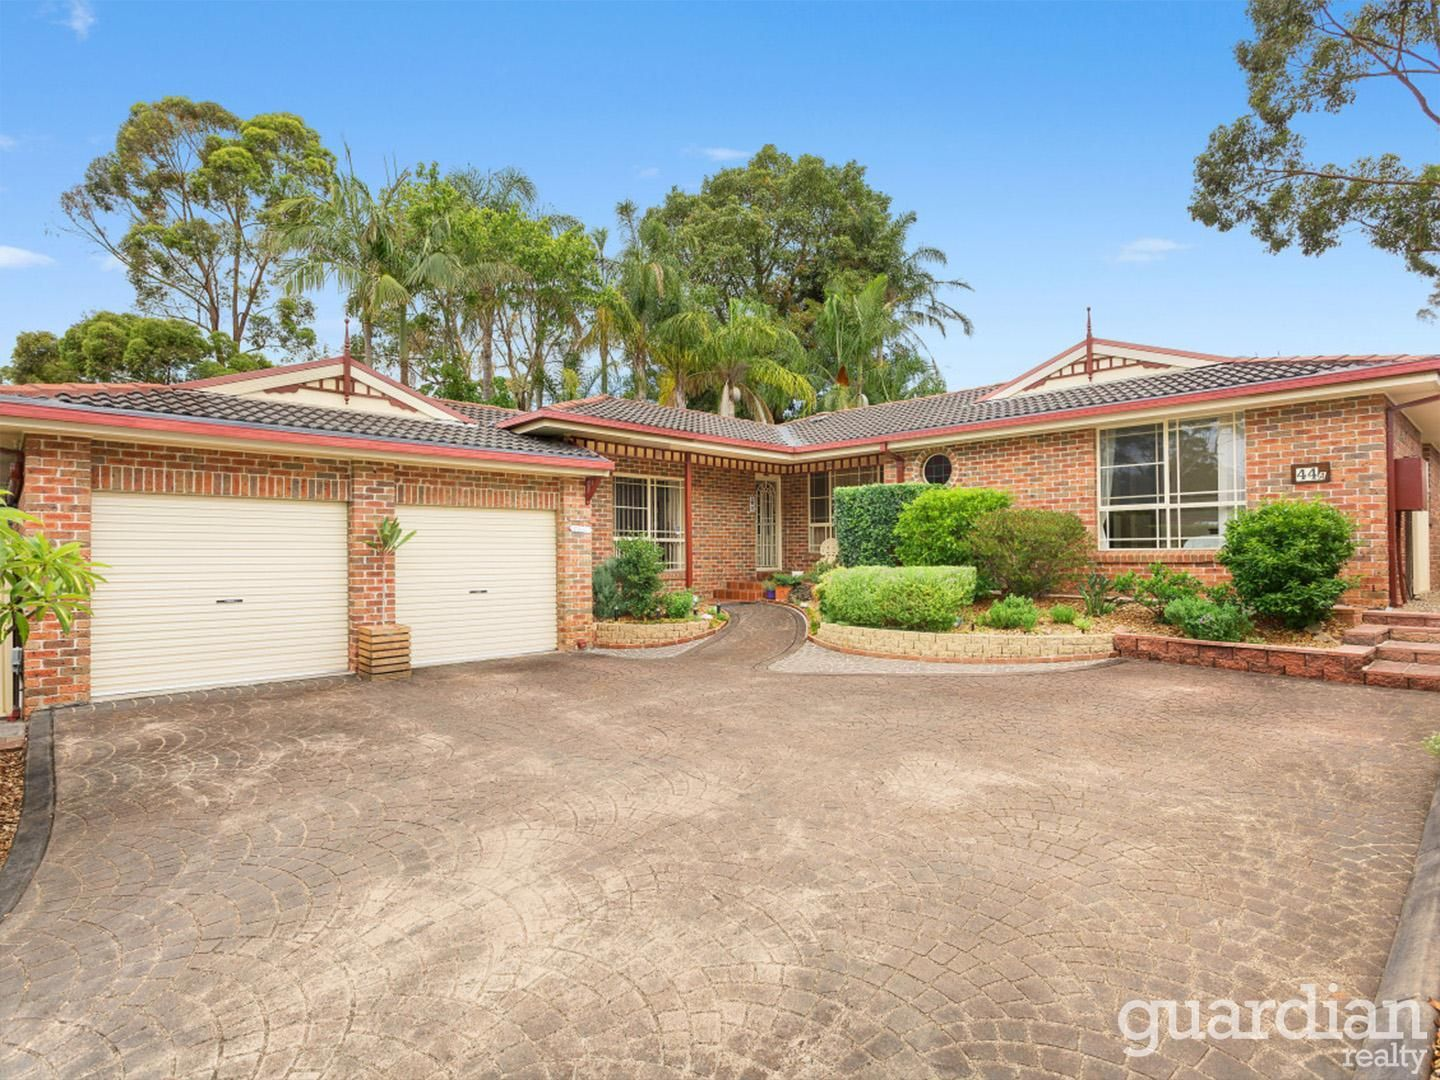 44a Francis Street, Castle Hill NSW 2154, Image 0